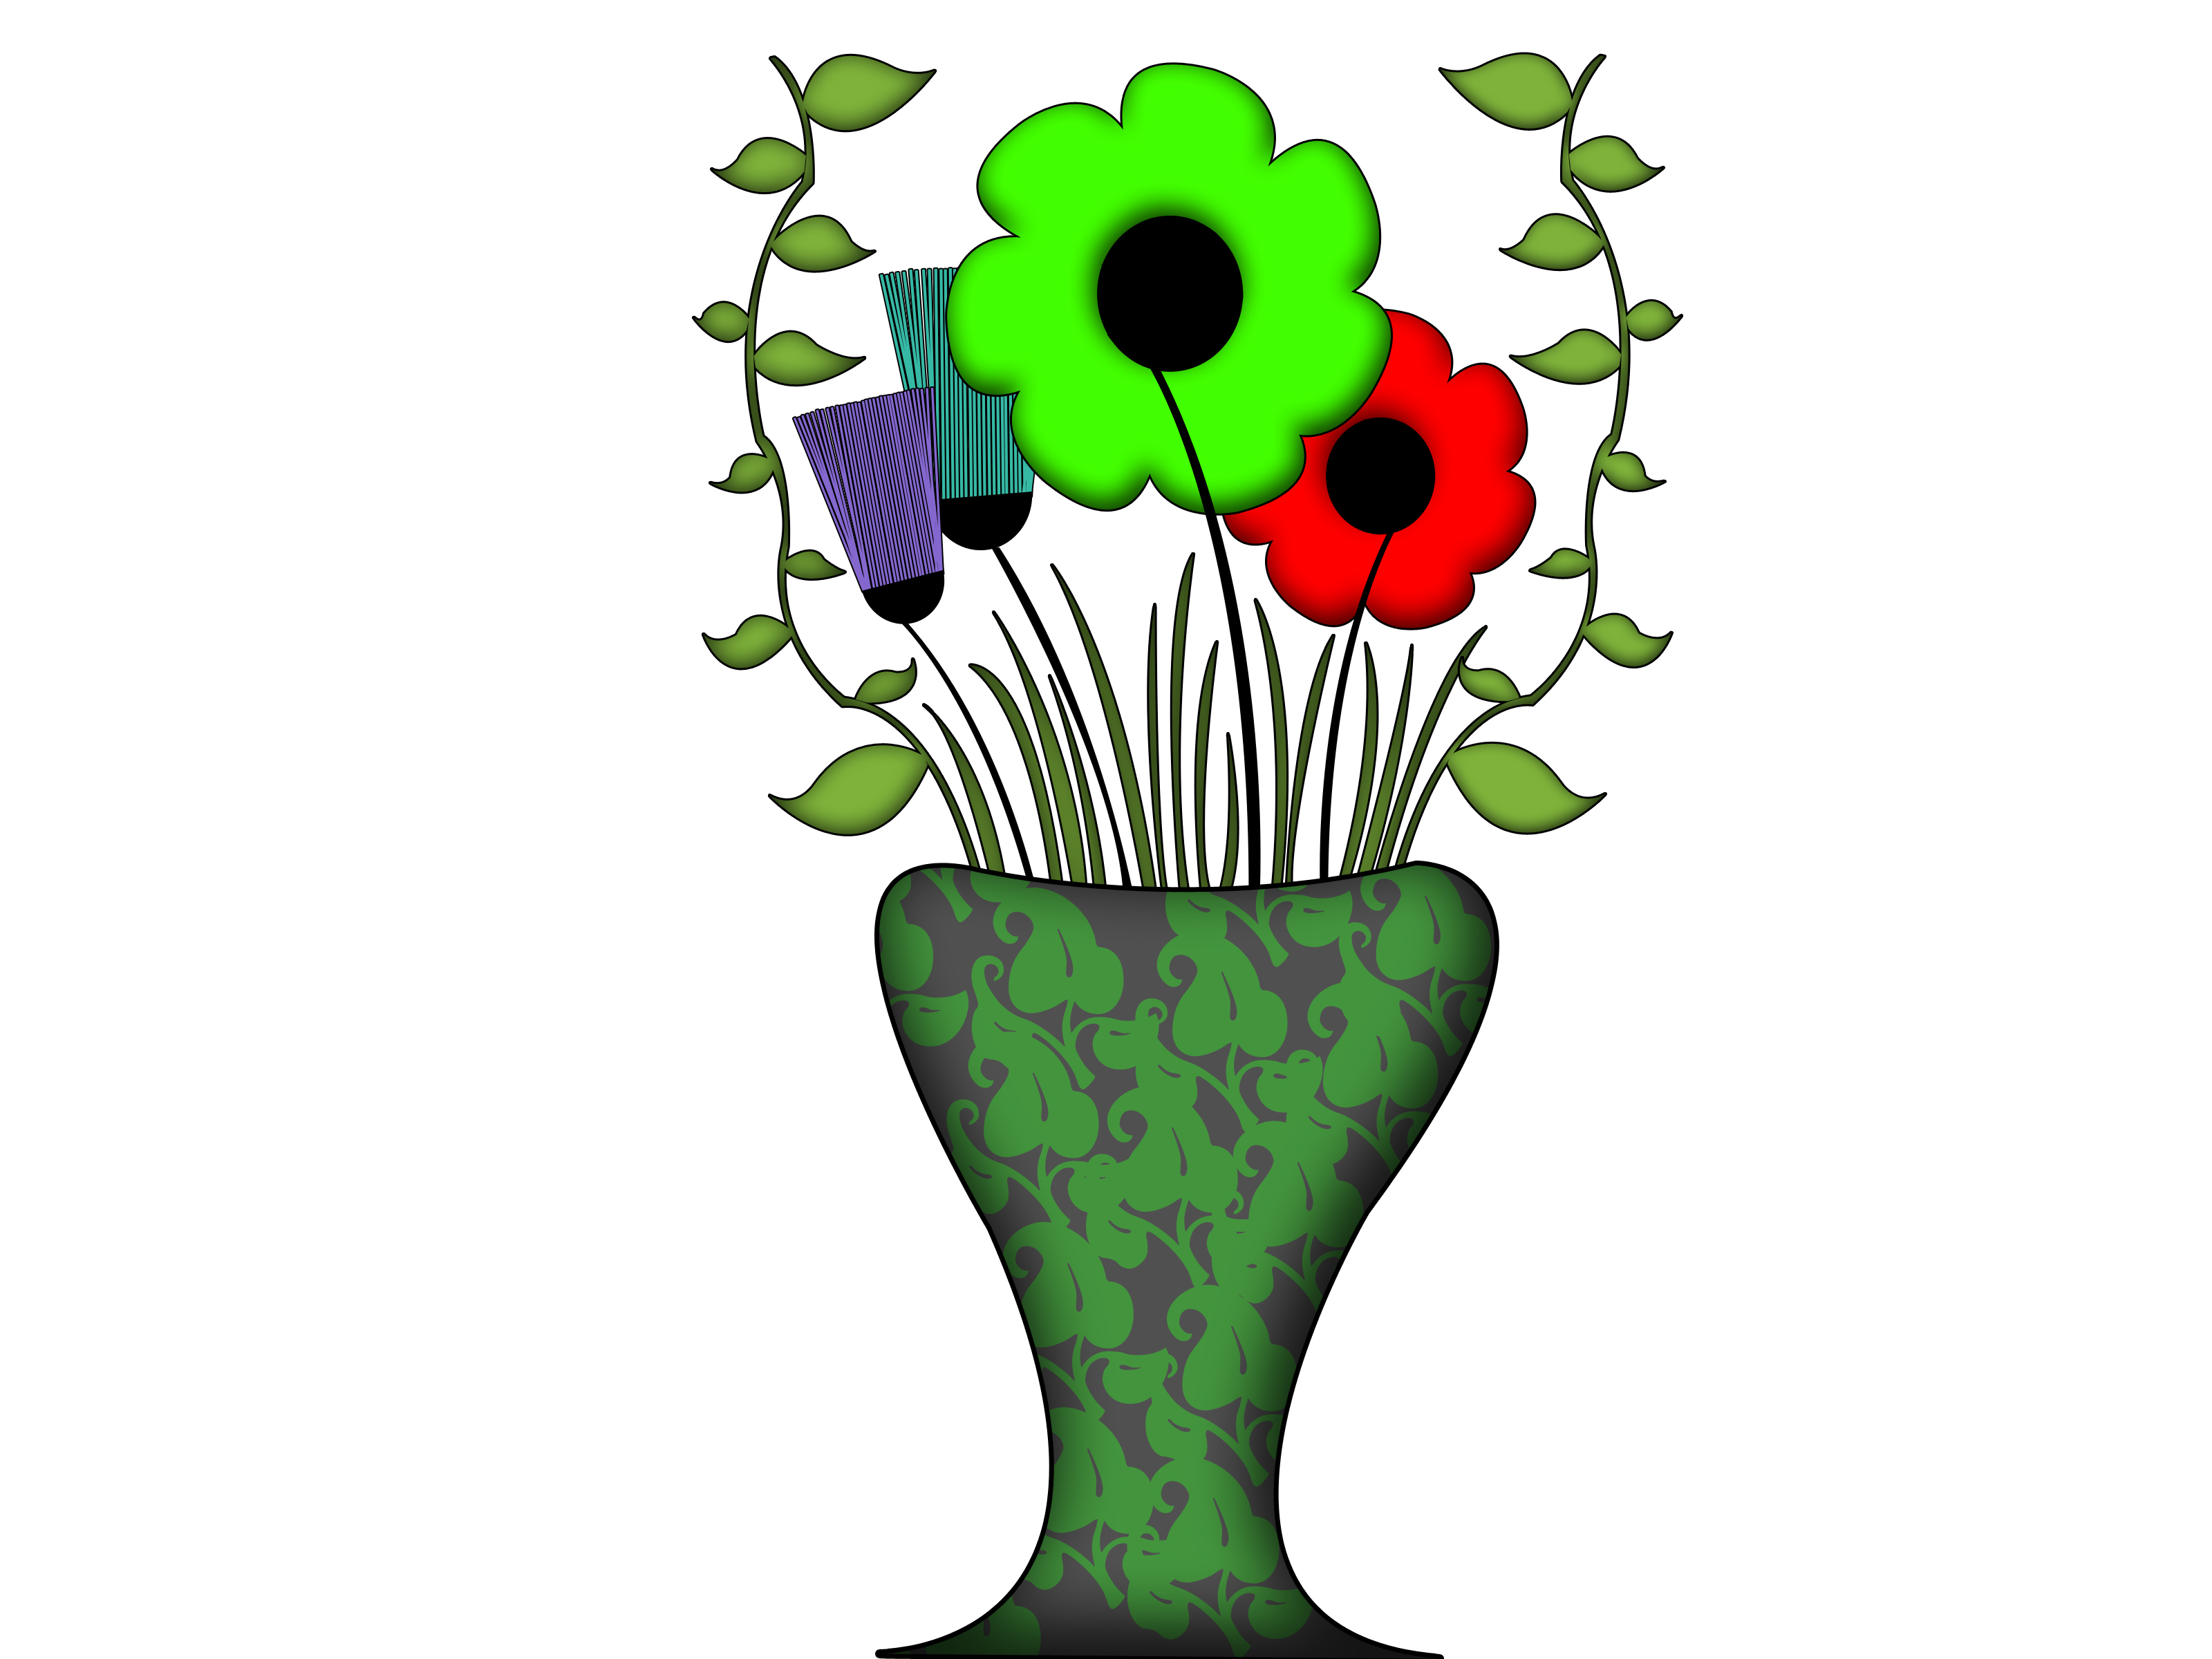 3200x2400 How To Draw Flowers And Leaves In A Vase 9 Steps (With Pictures)